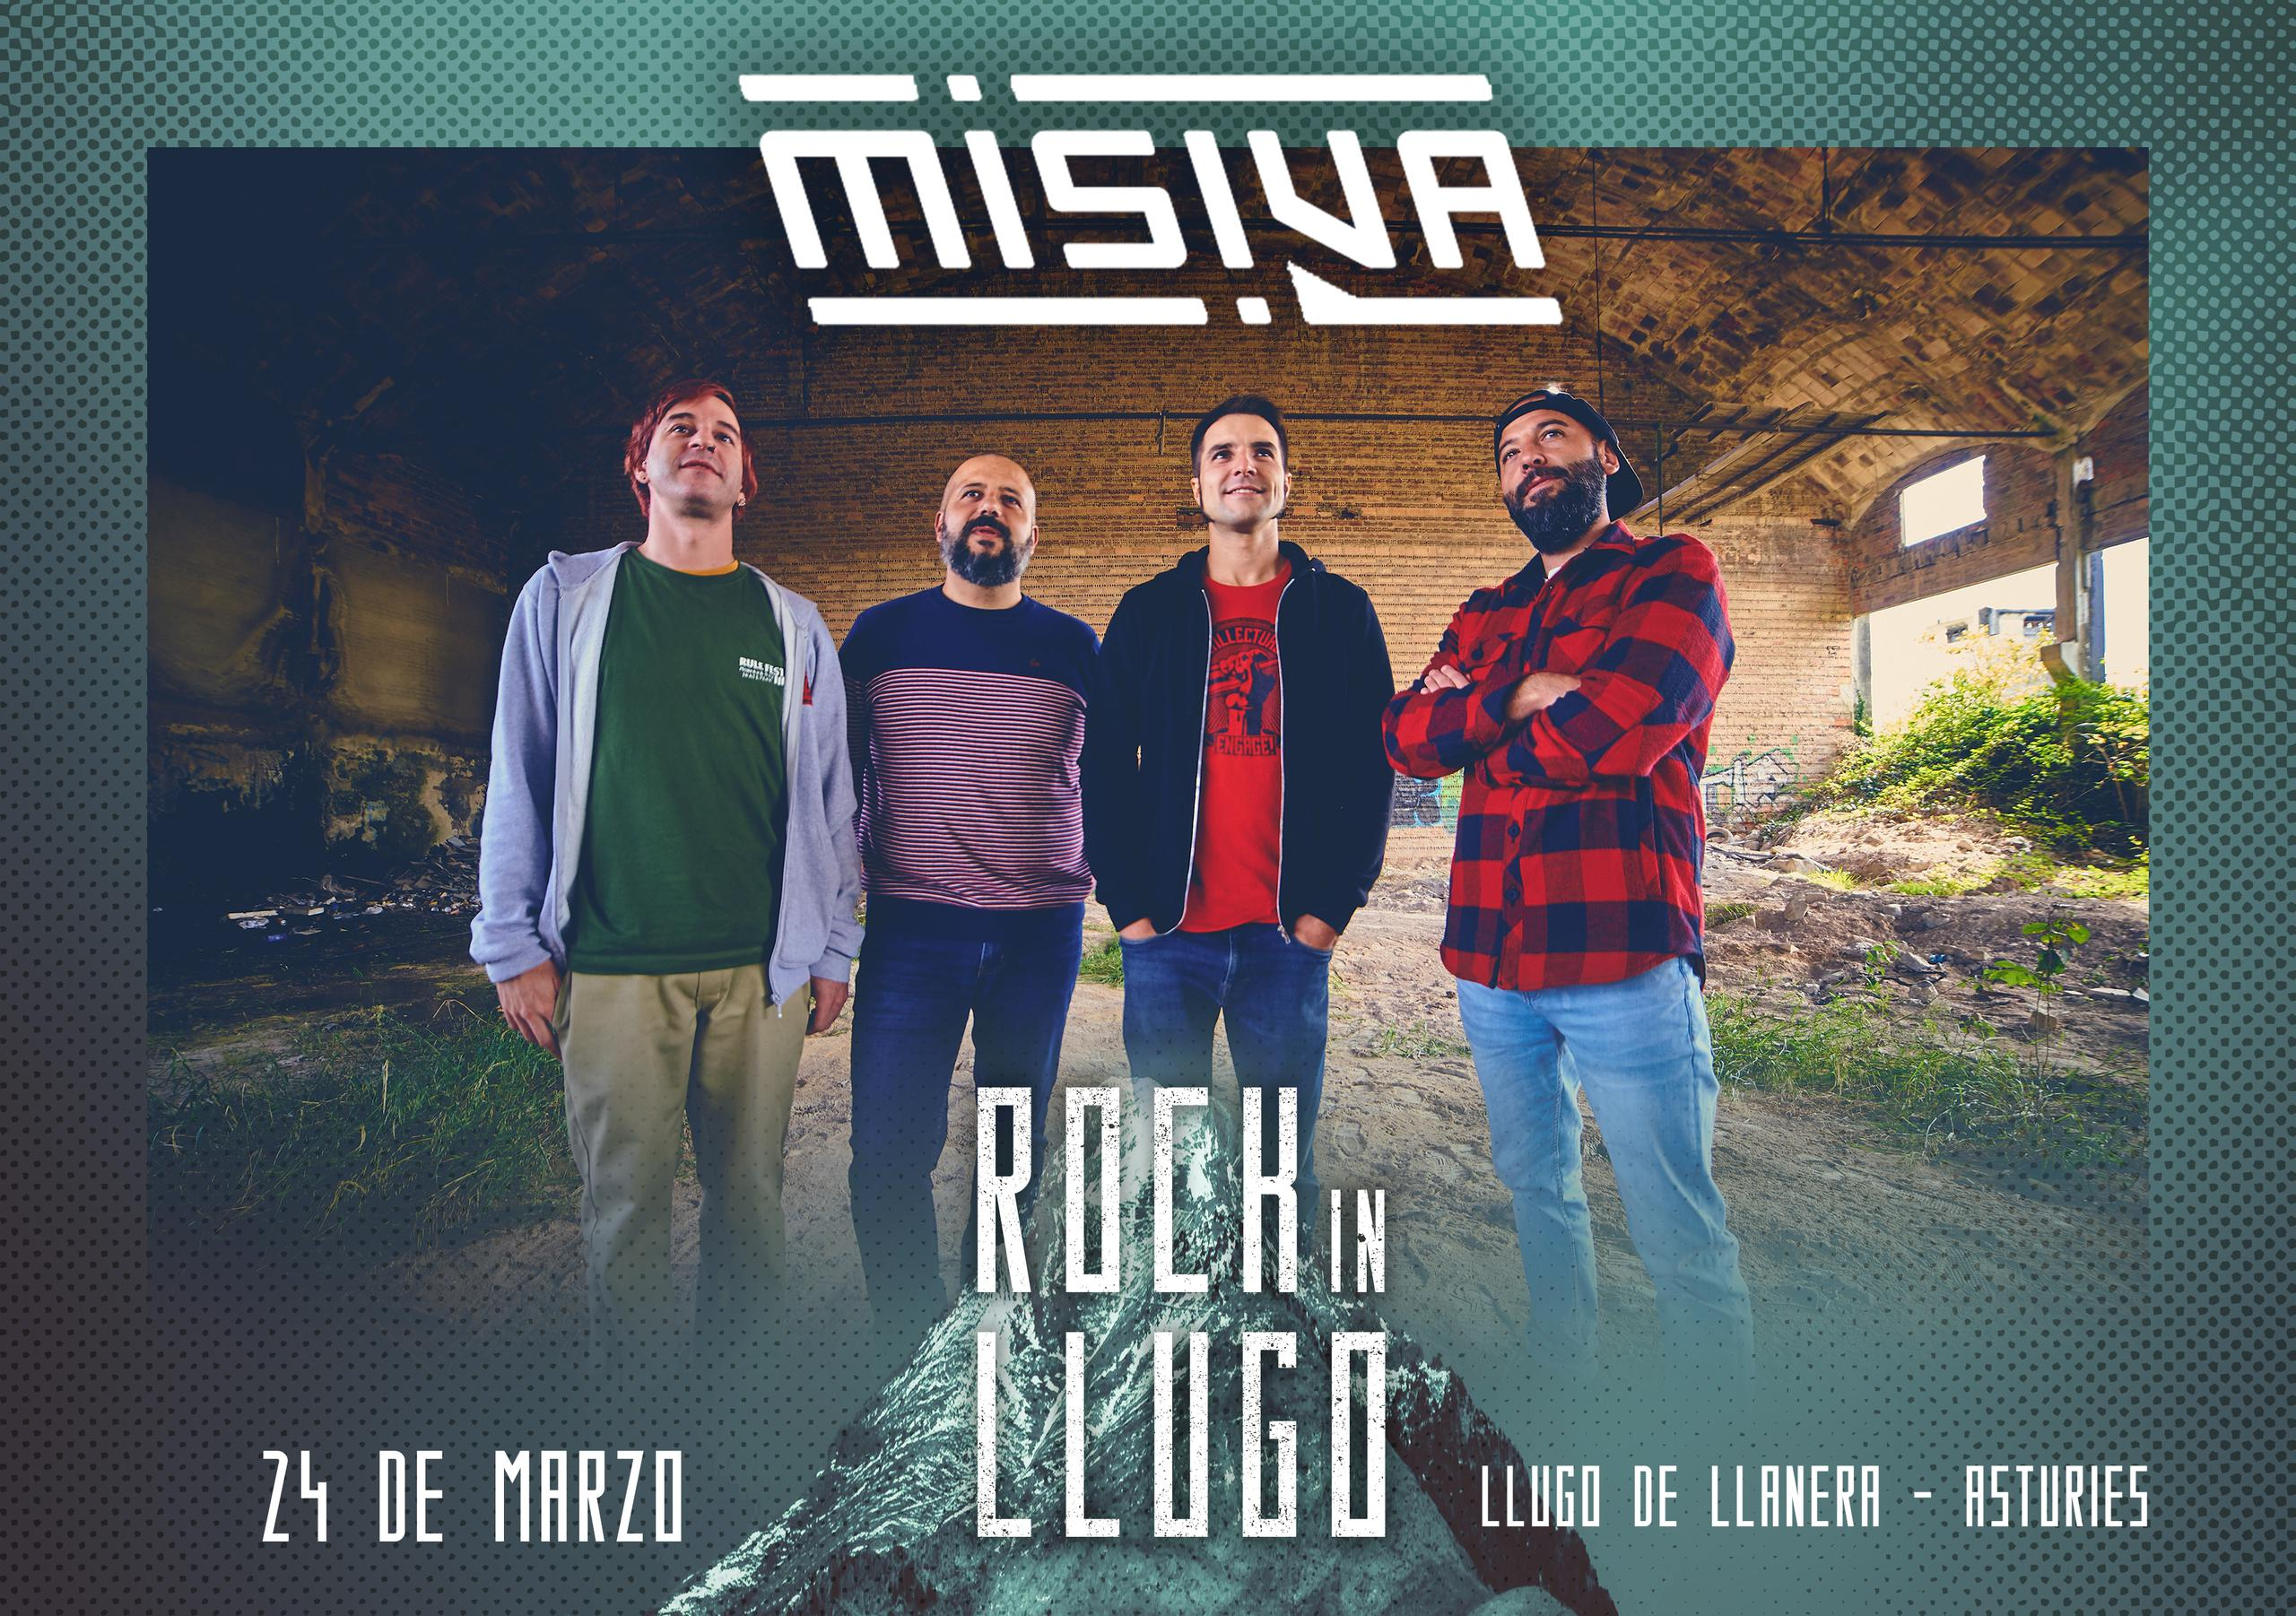 ¡¡Misiva estarán en el Rock in Llugo!!